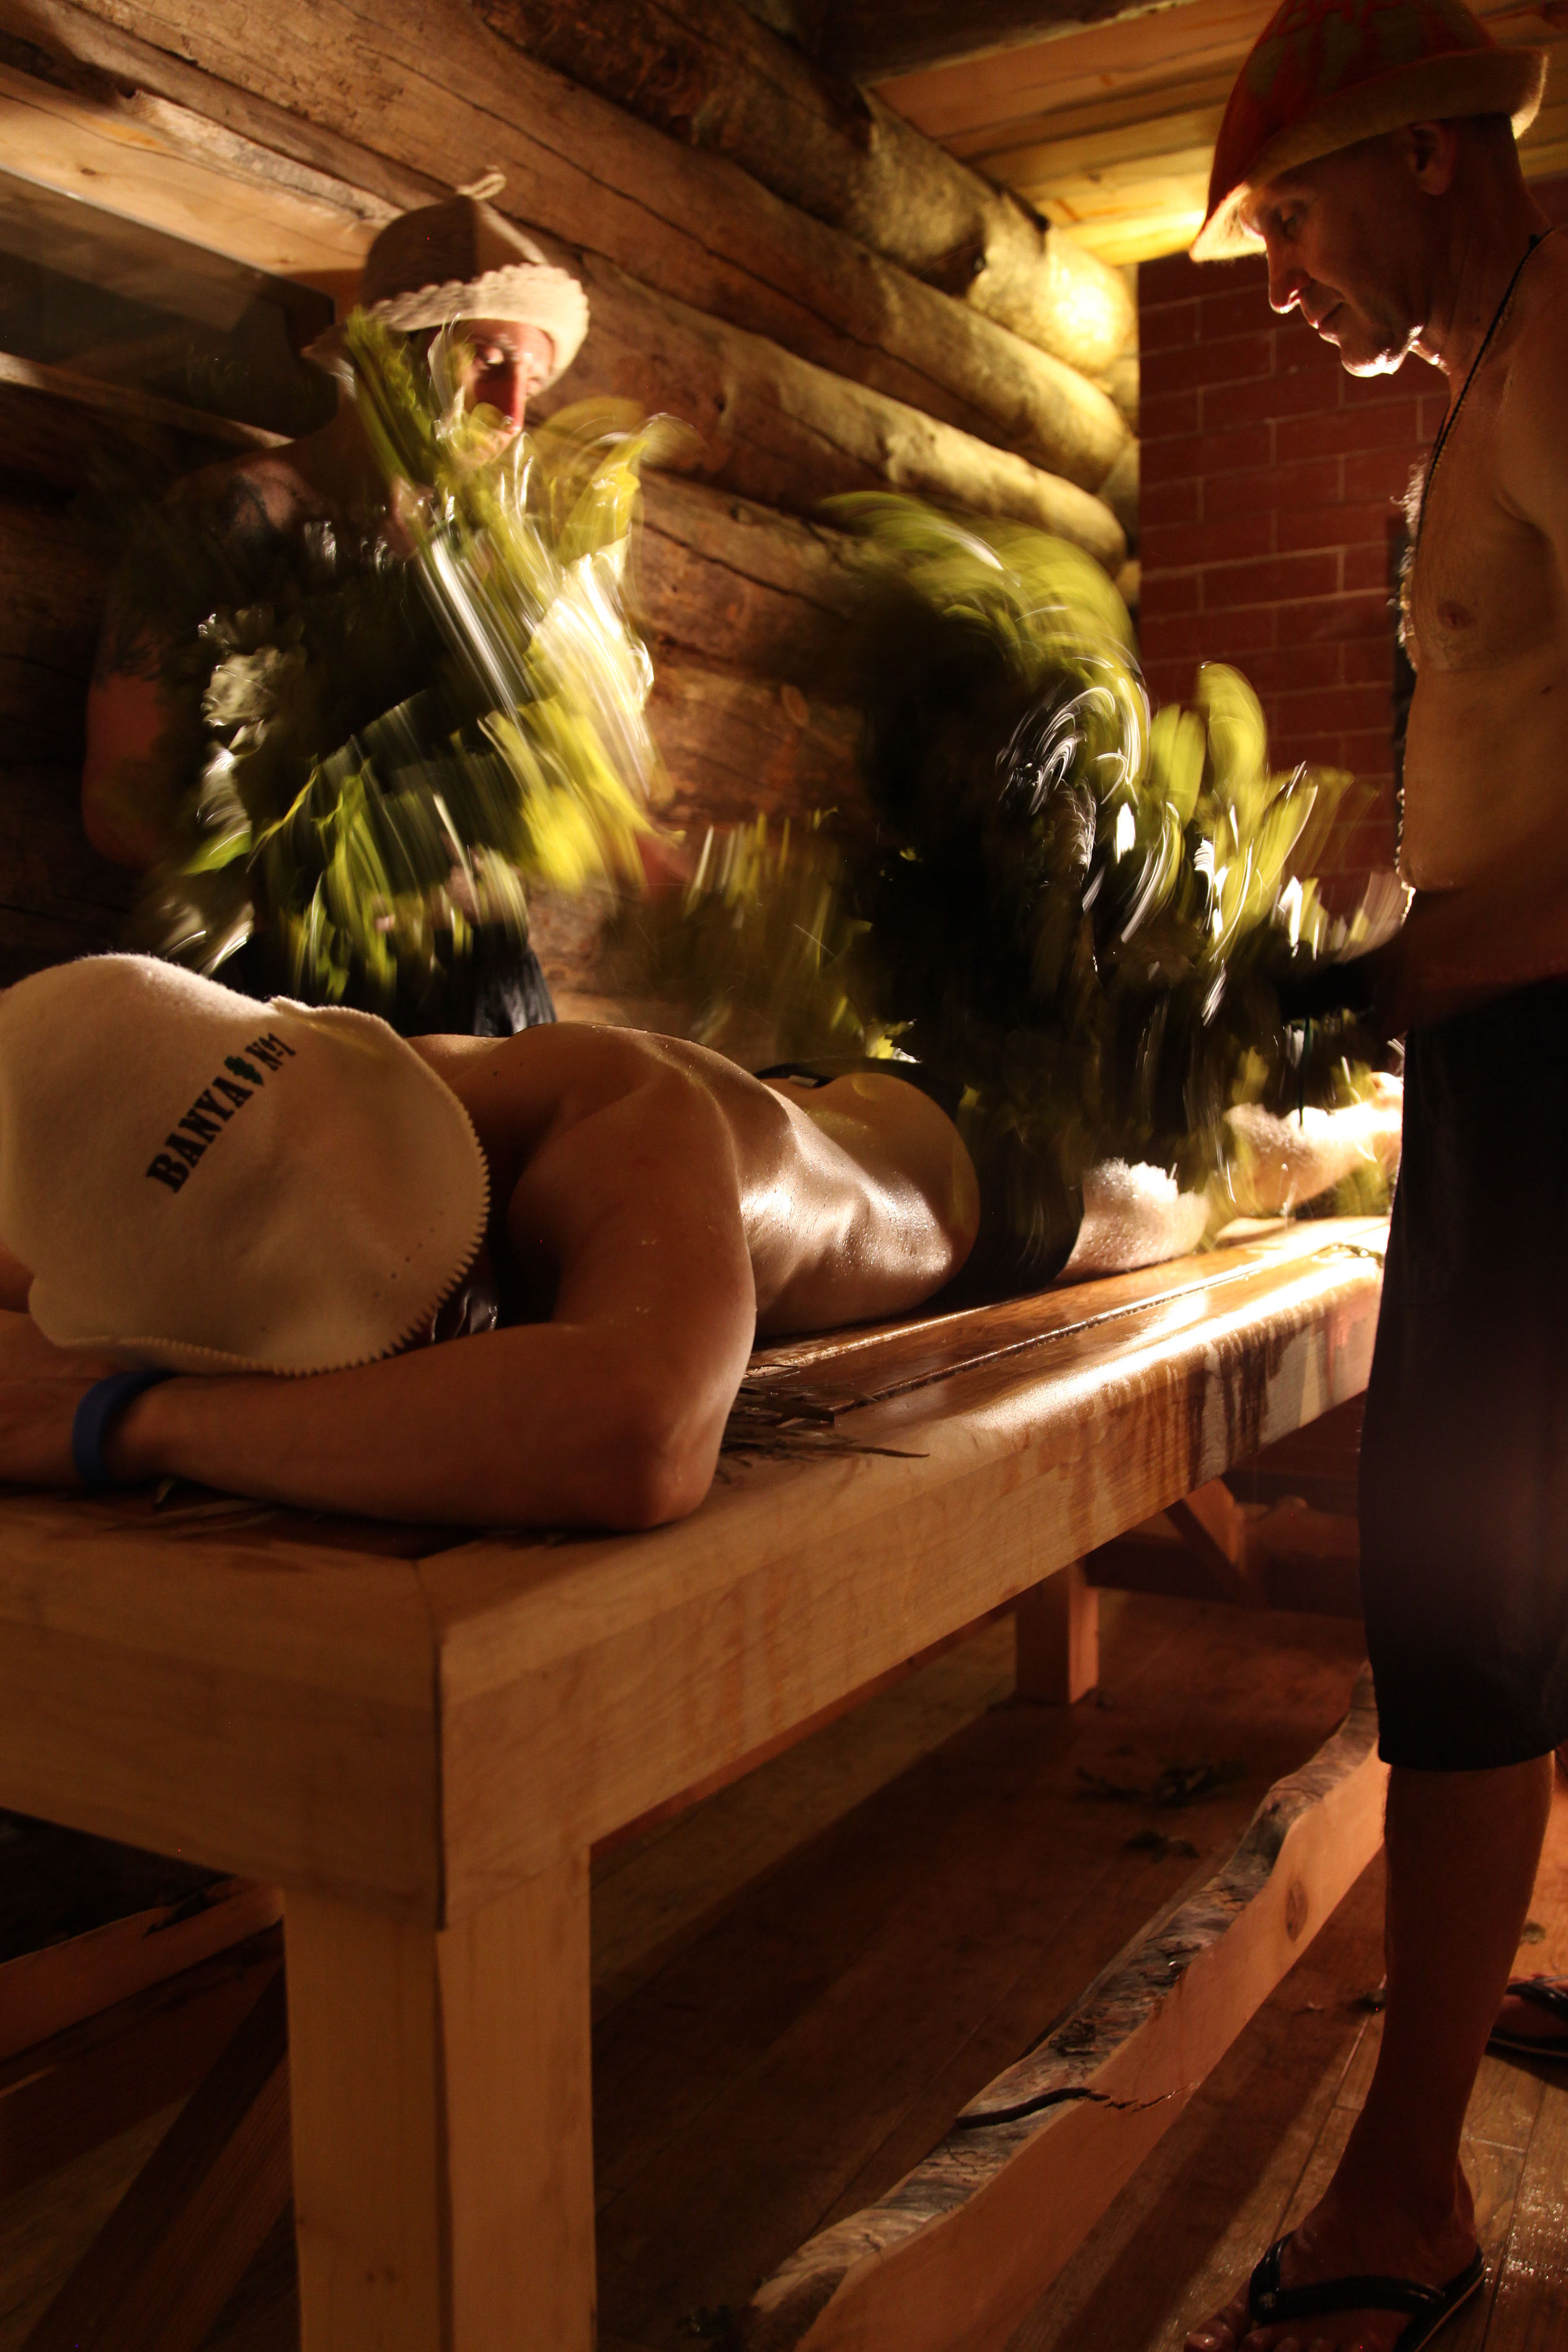 Parenie is a traditional and invigorating thermal treatment which involves a leafy bundle of birch, oak or eucalyptus twigs (called venik) being brushed over your body.